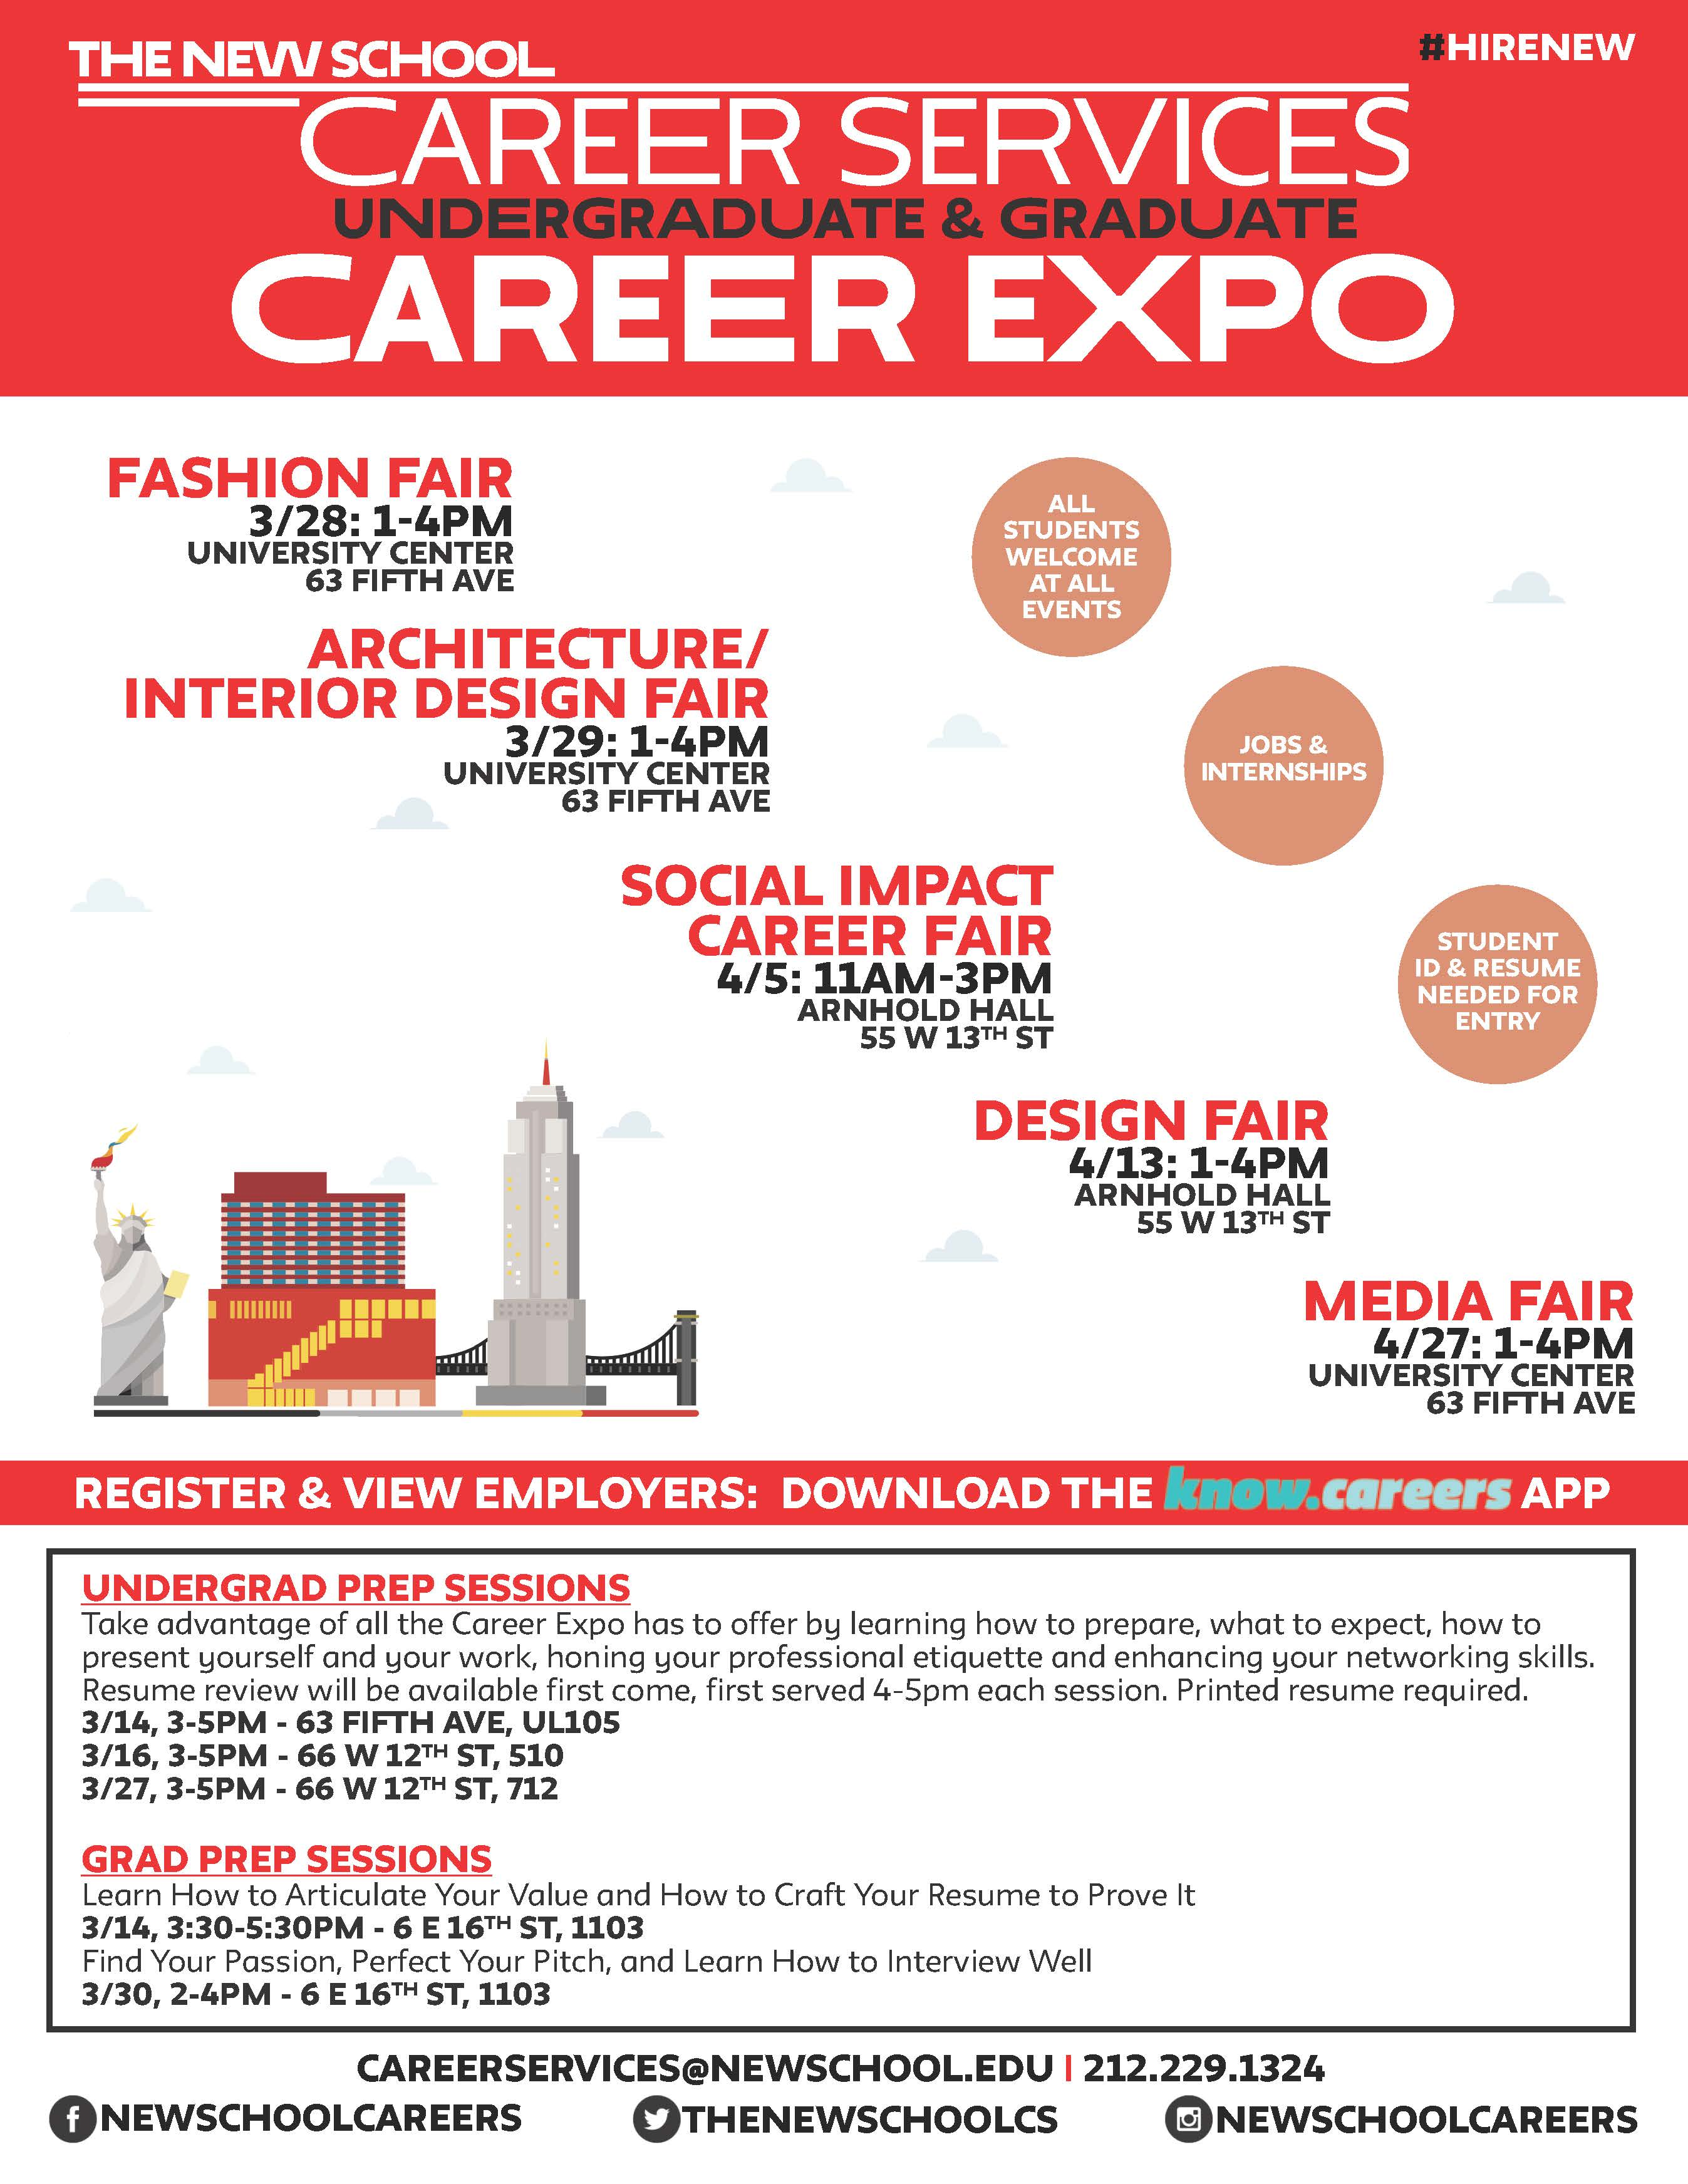 Spring 2017 Career Expo